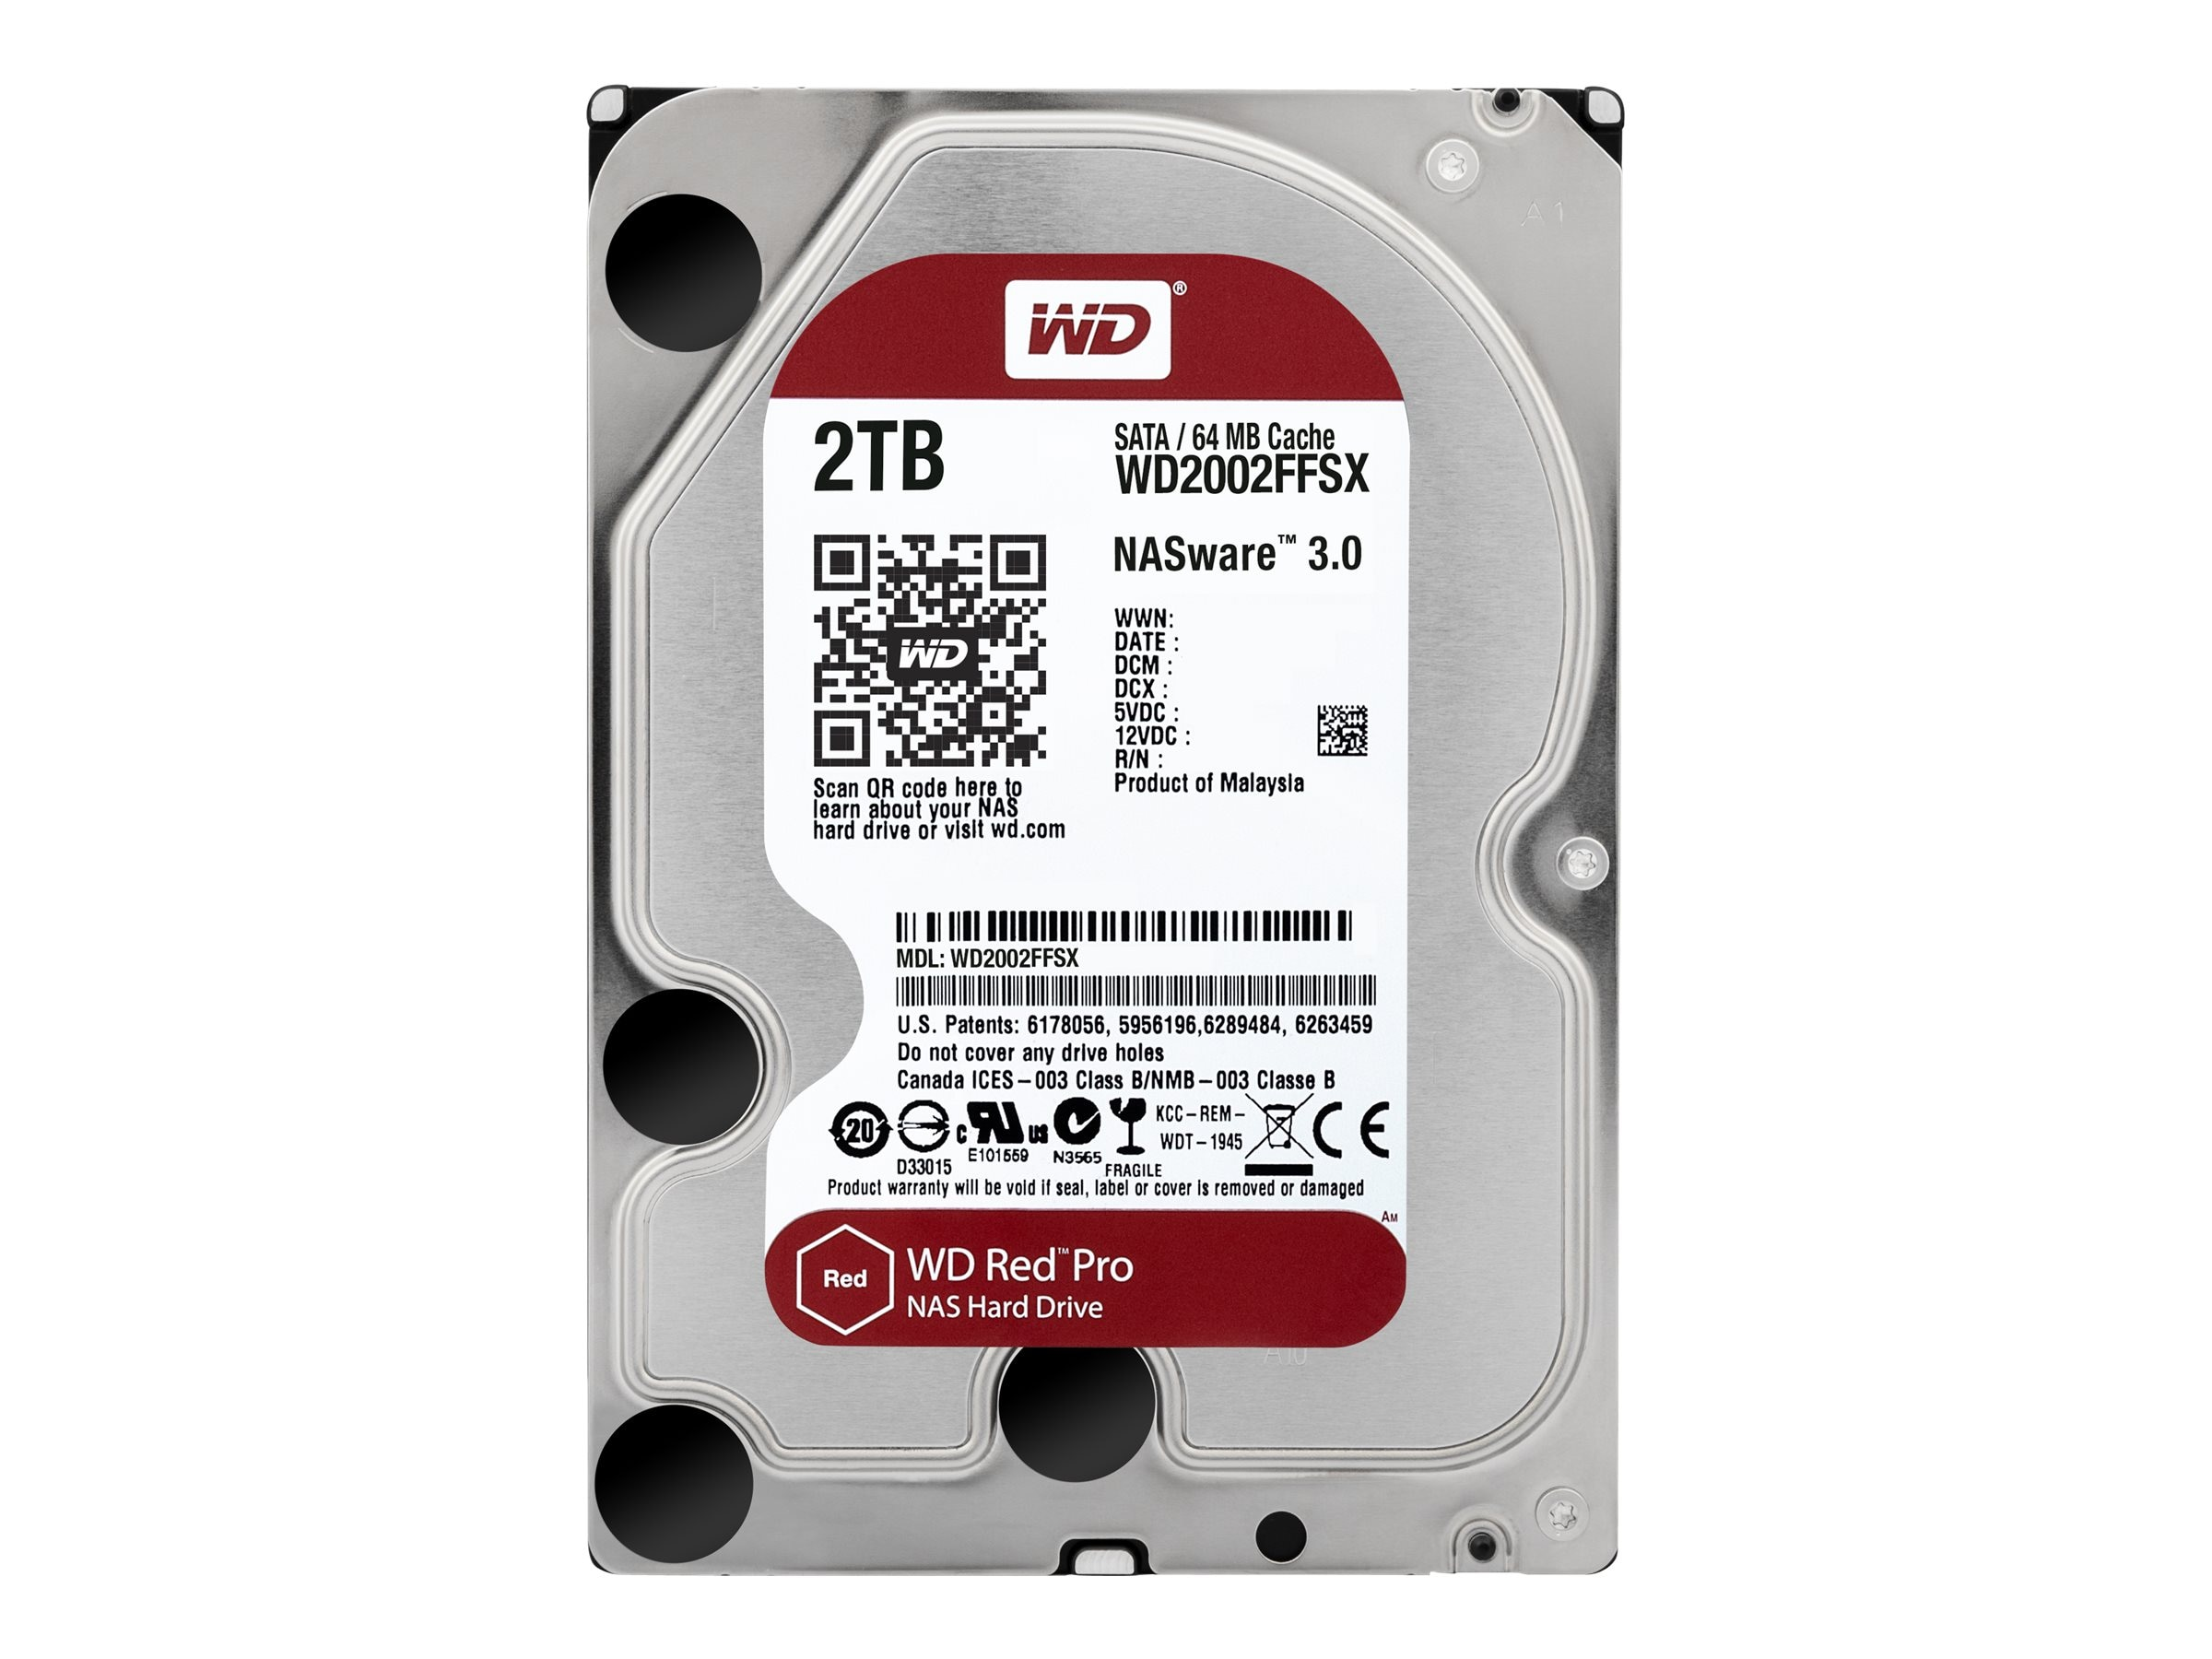 WD 2TB Red Pro SATA 6Gb s Internal Hard Drive - 64MB Cache, WD2002FFSX